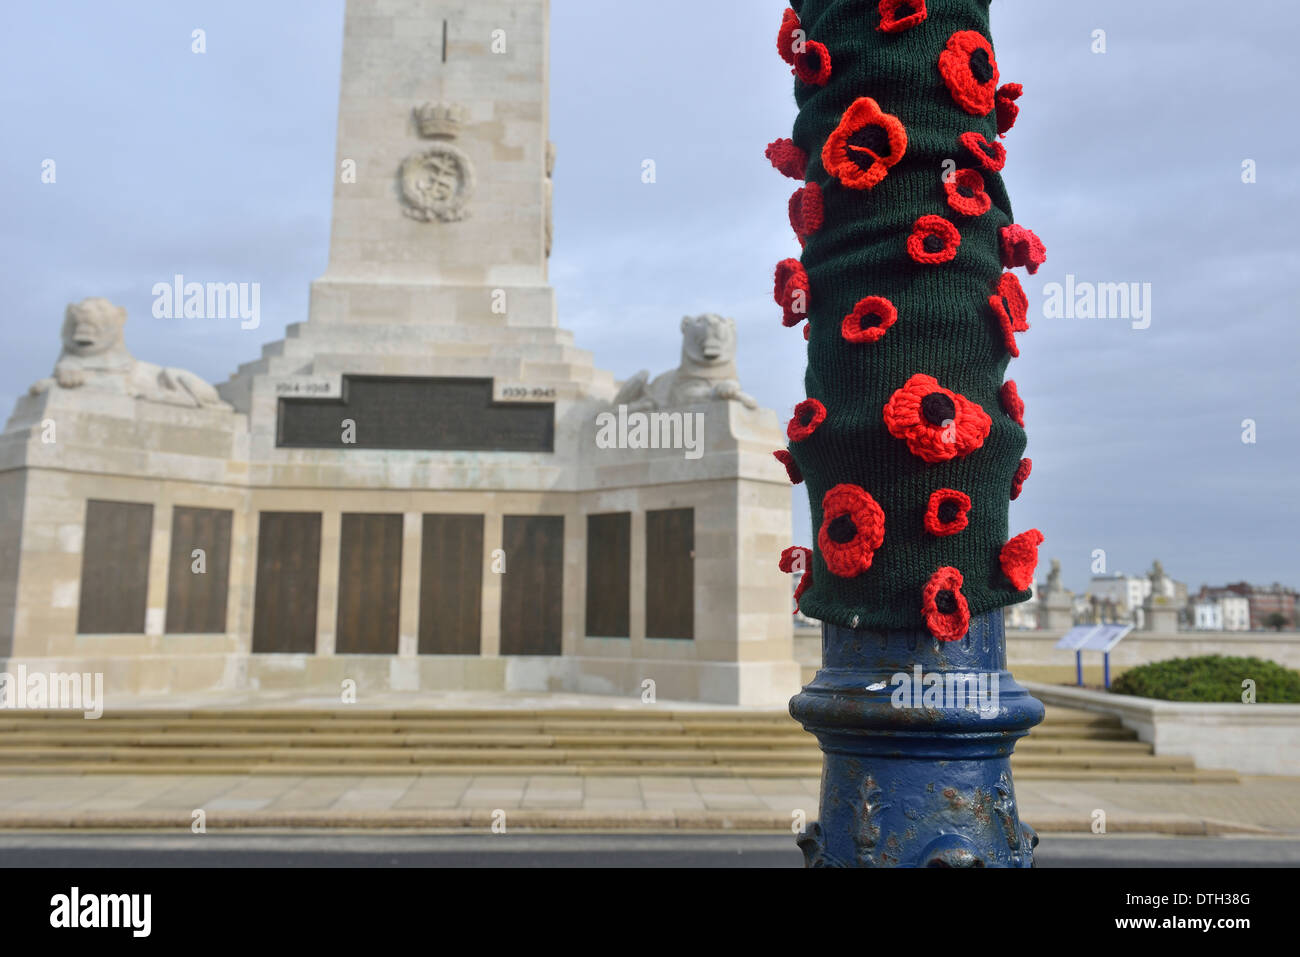 Memorial to seaman lost in war on Southsea seafront, Portsmouth, England, UK Stock Photo